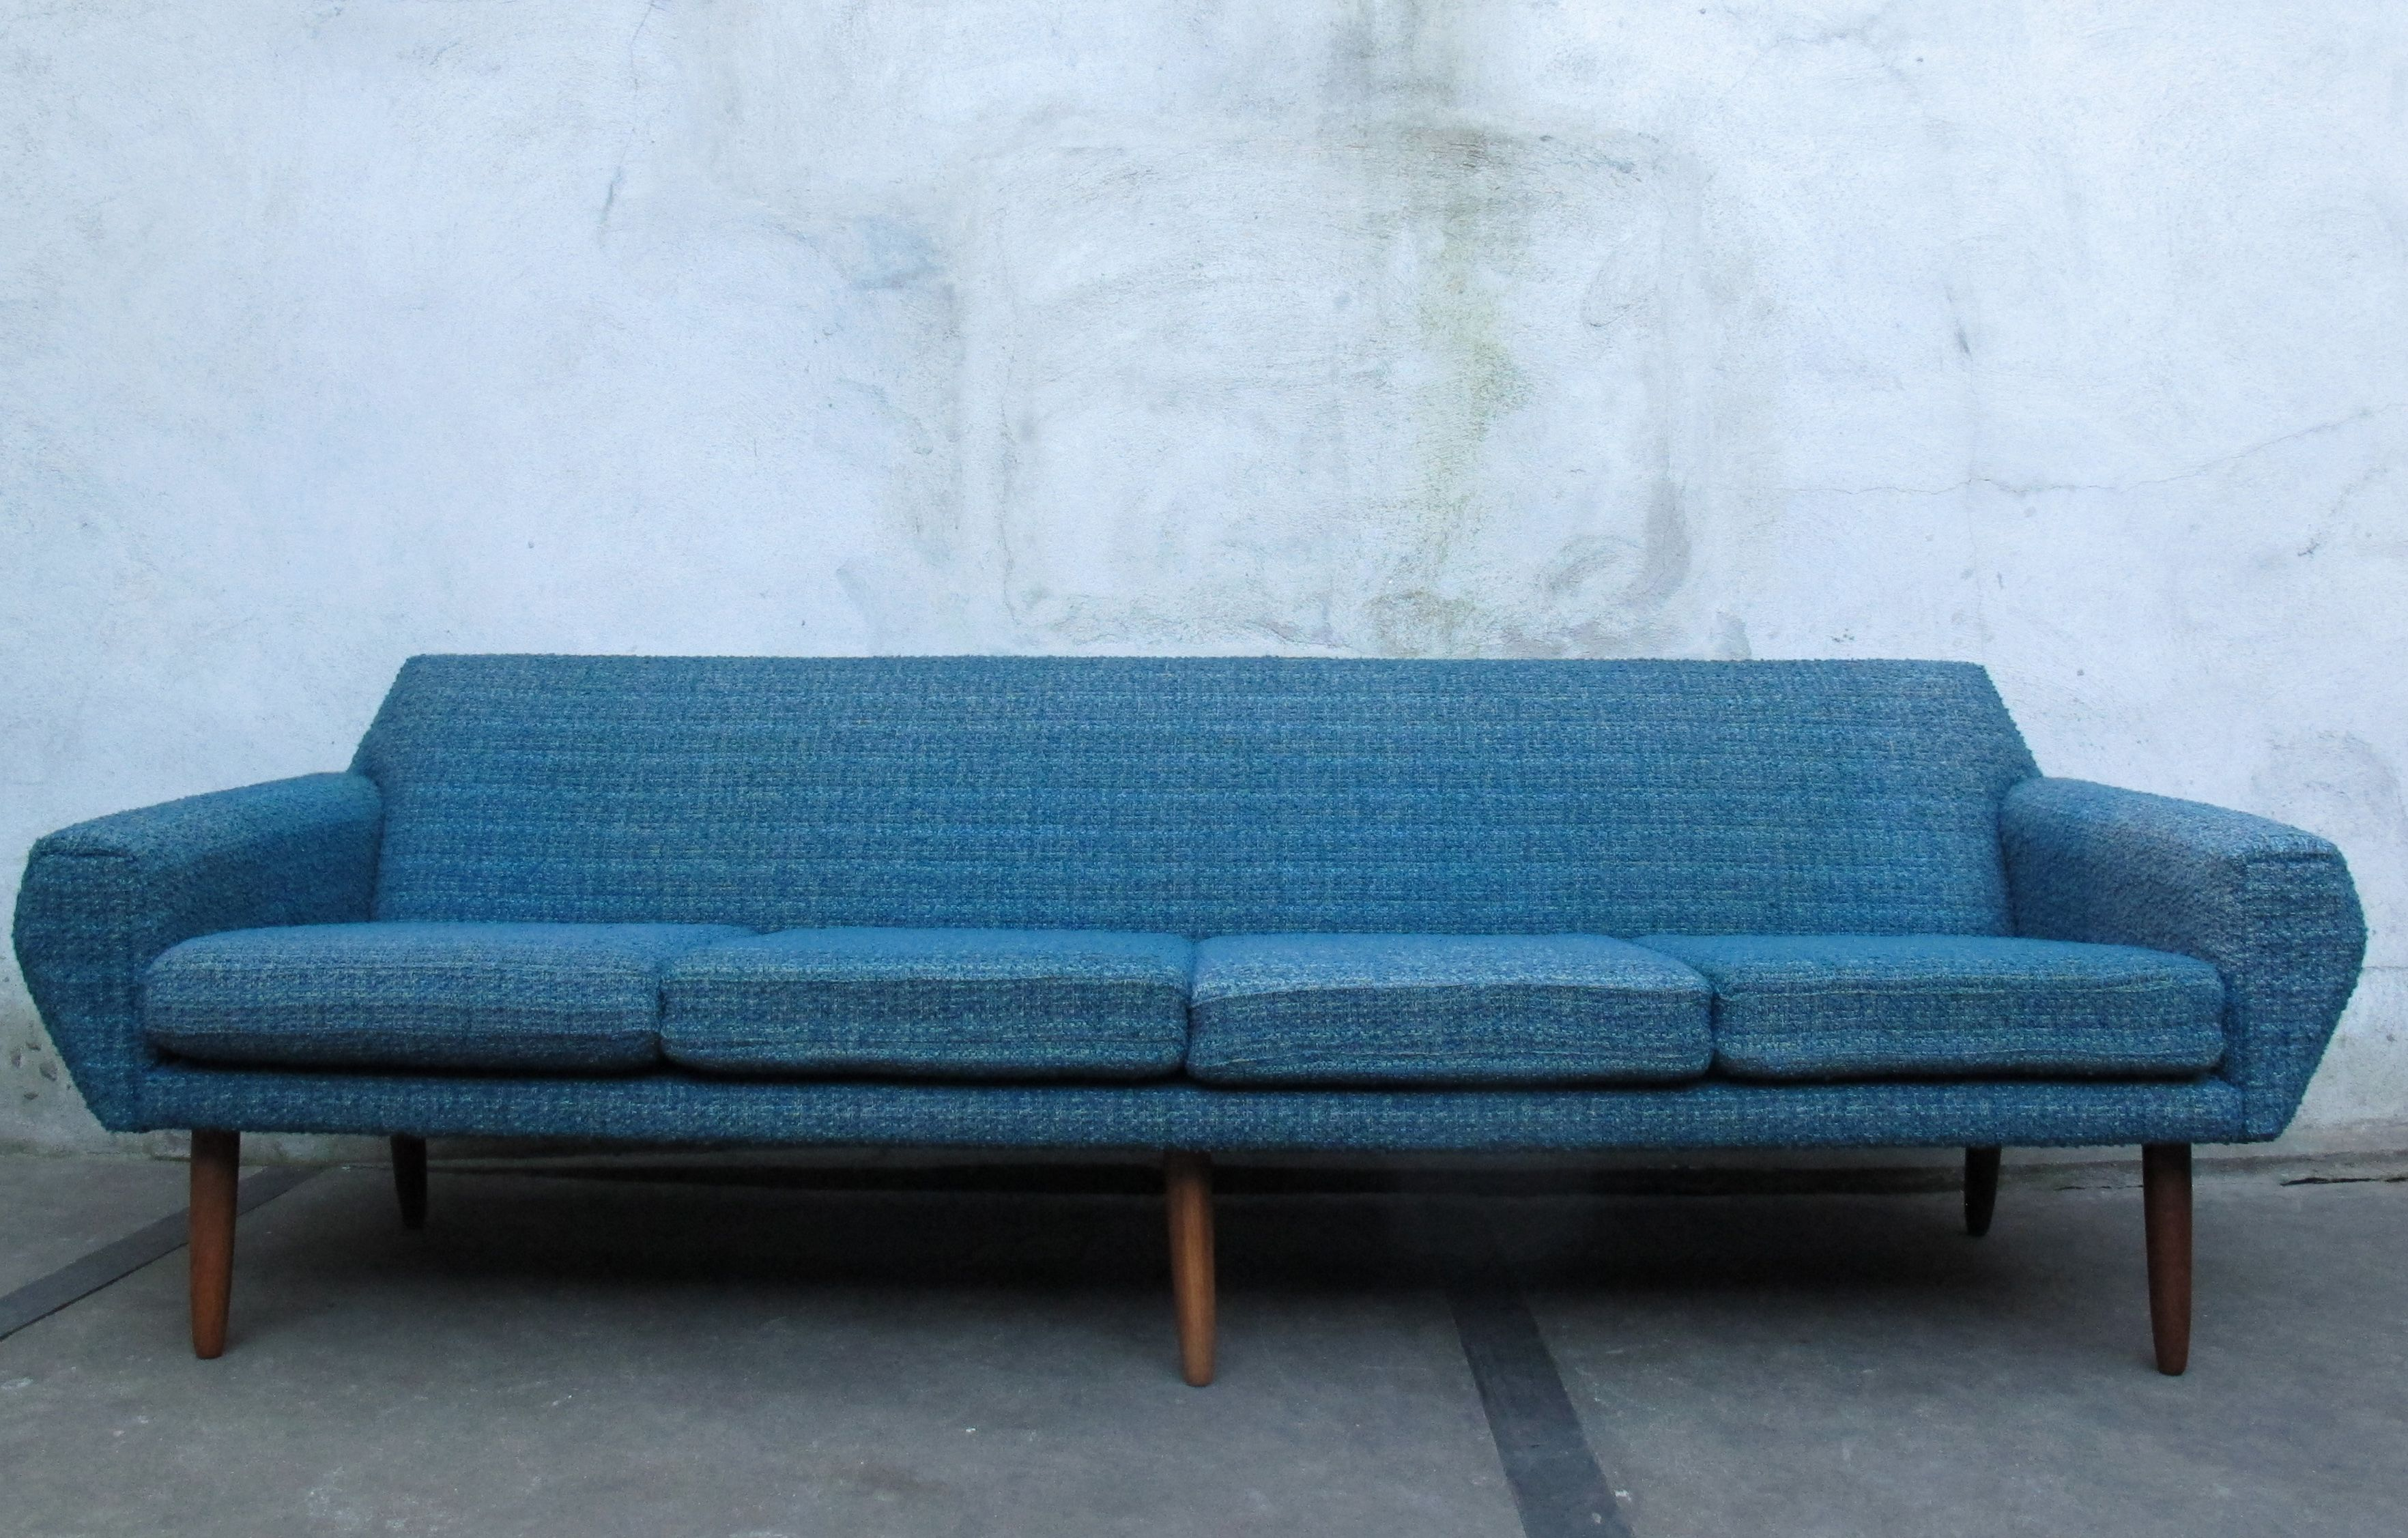 DANISH MODERN TEAK SOFA BY AAGE CHRISTIANSEN FOR ERHARD & ANDERSEN